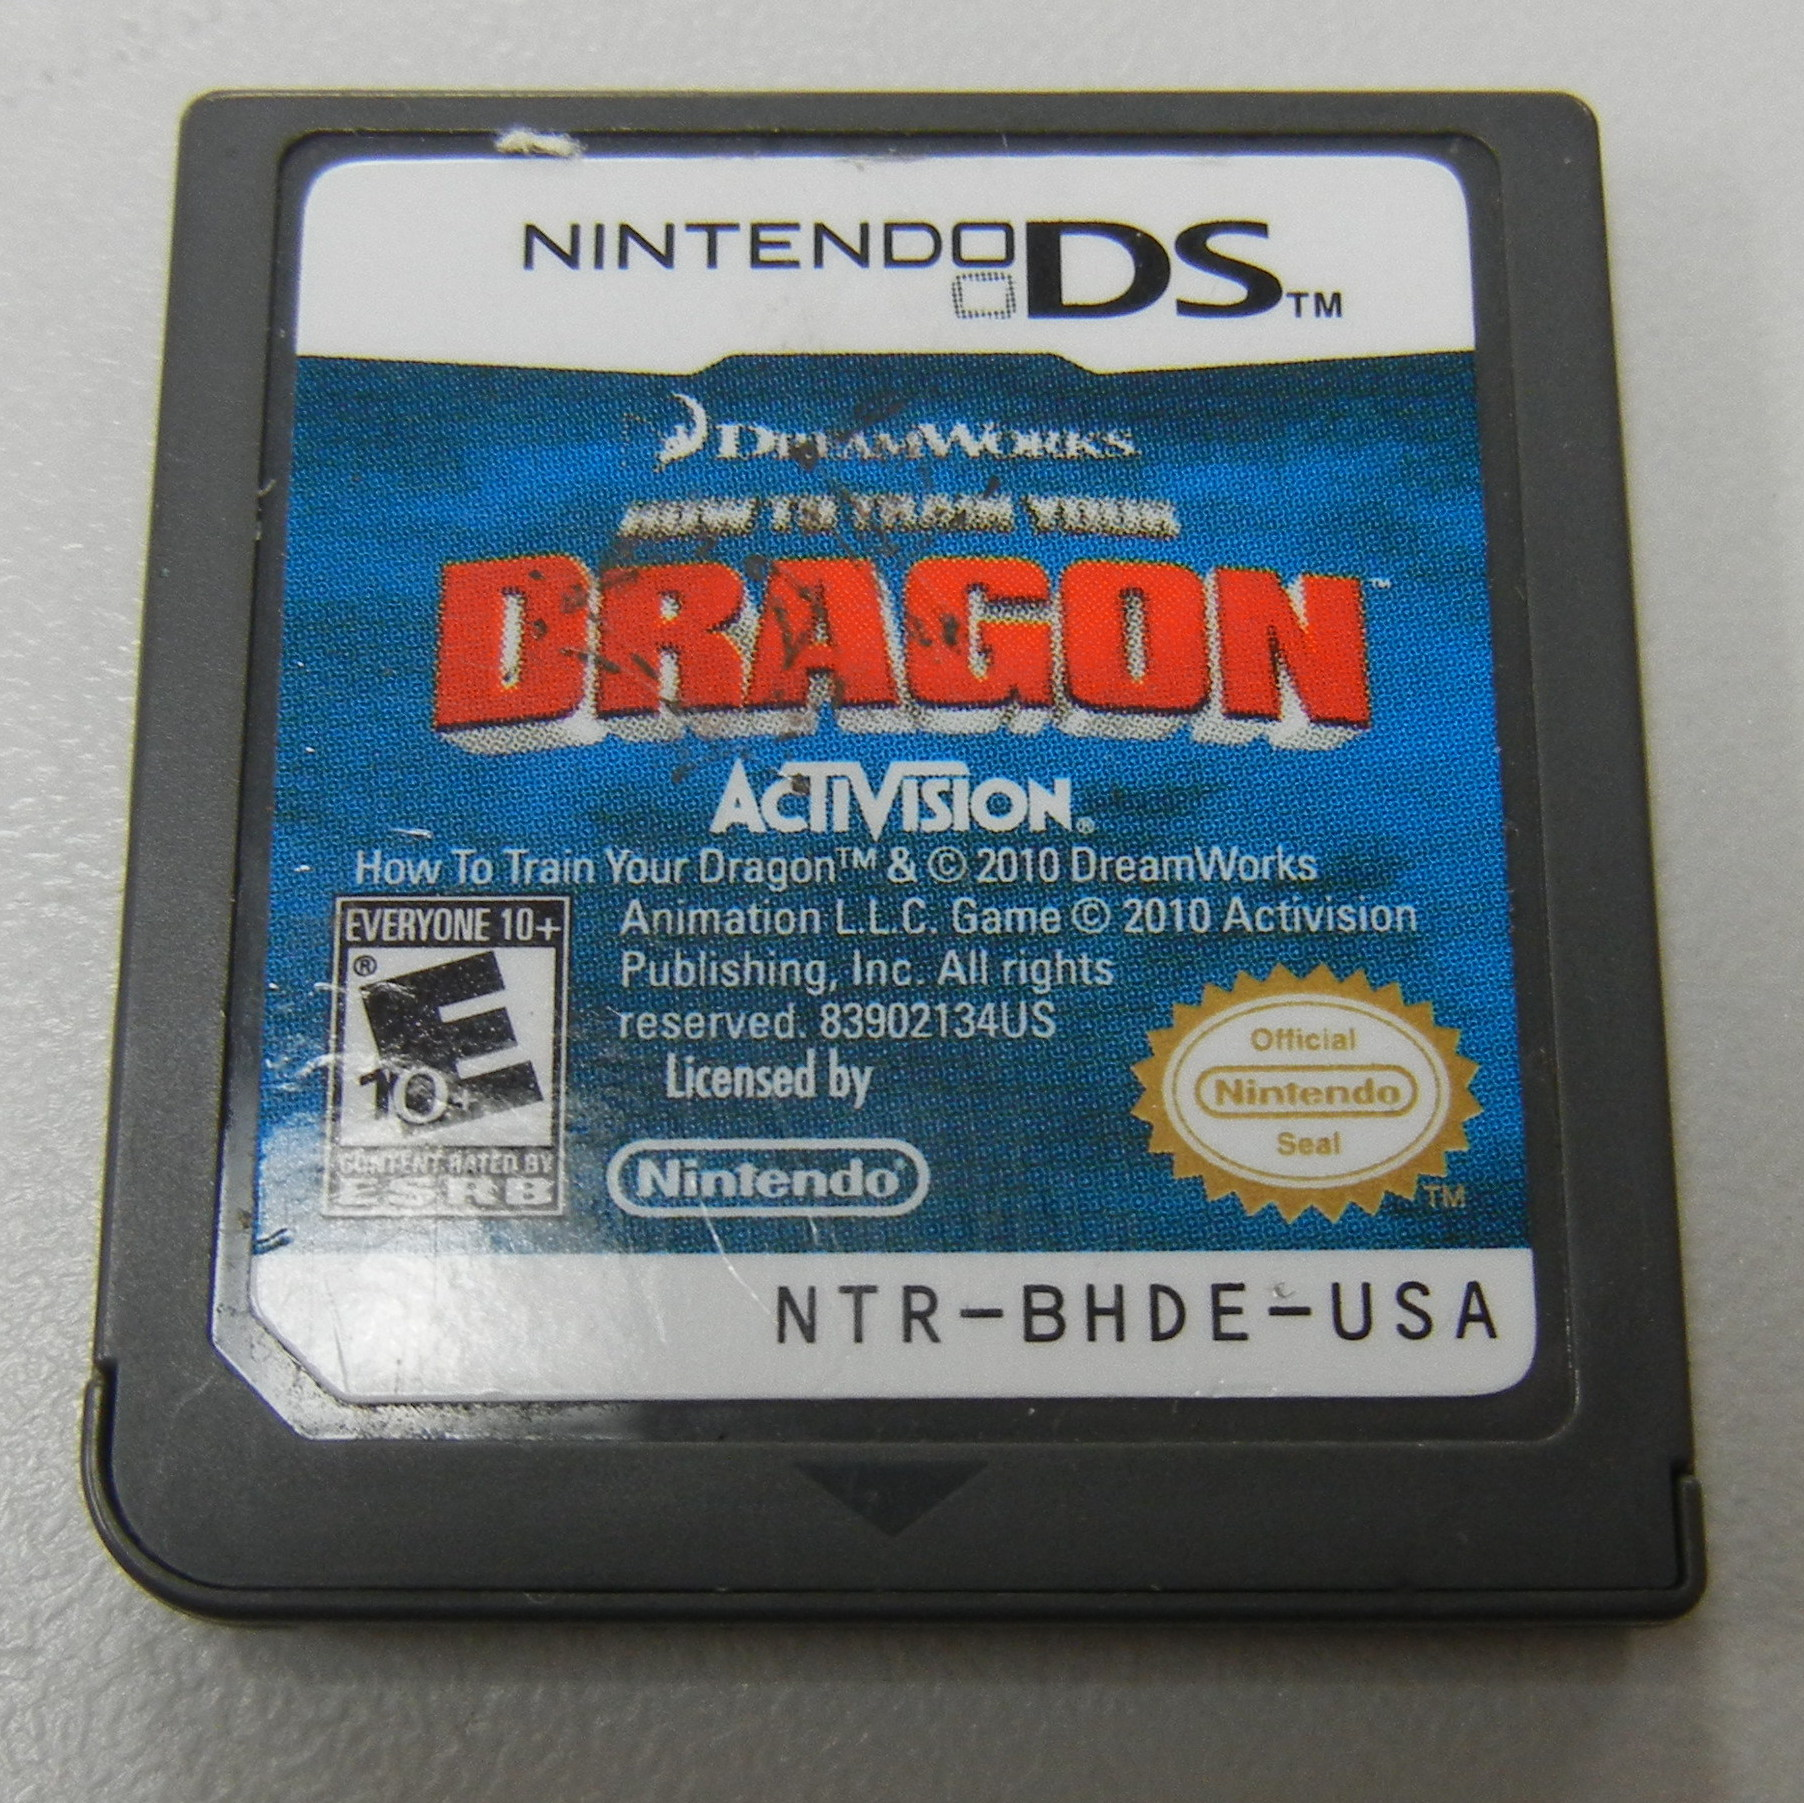 HOW TO TRAIN YOUR DRAGON - NINTENDO DS GAME